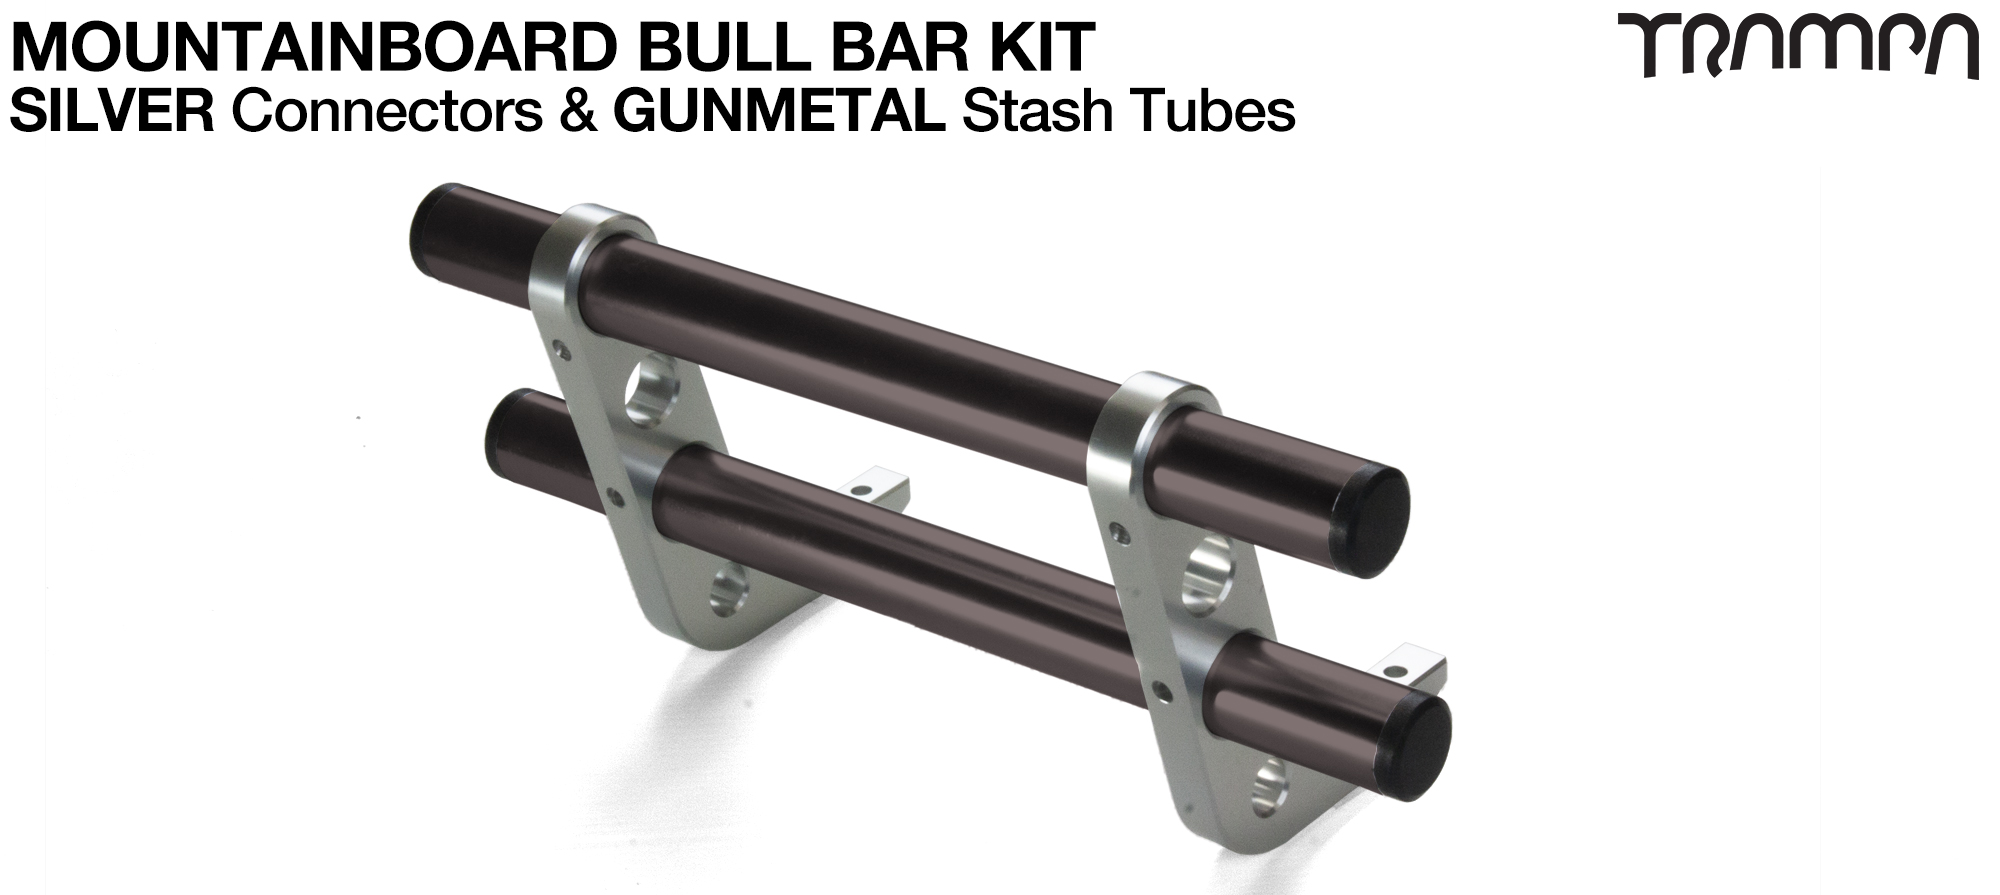 SILVER Uprights & GUNMETAL Crossbar BULL BARS for MOUNTAINBOARDS T6 Heat Treated CNC'd Aluminium Uprights, with Hollow Aluminium Stash Tubes with Rubber end bungs